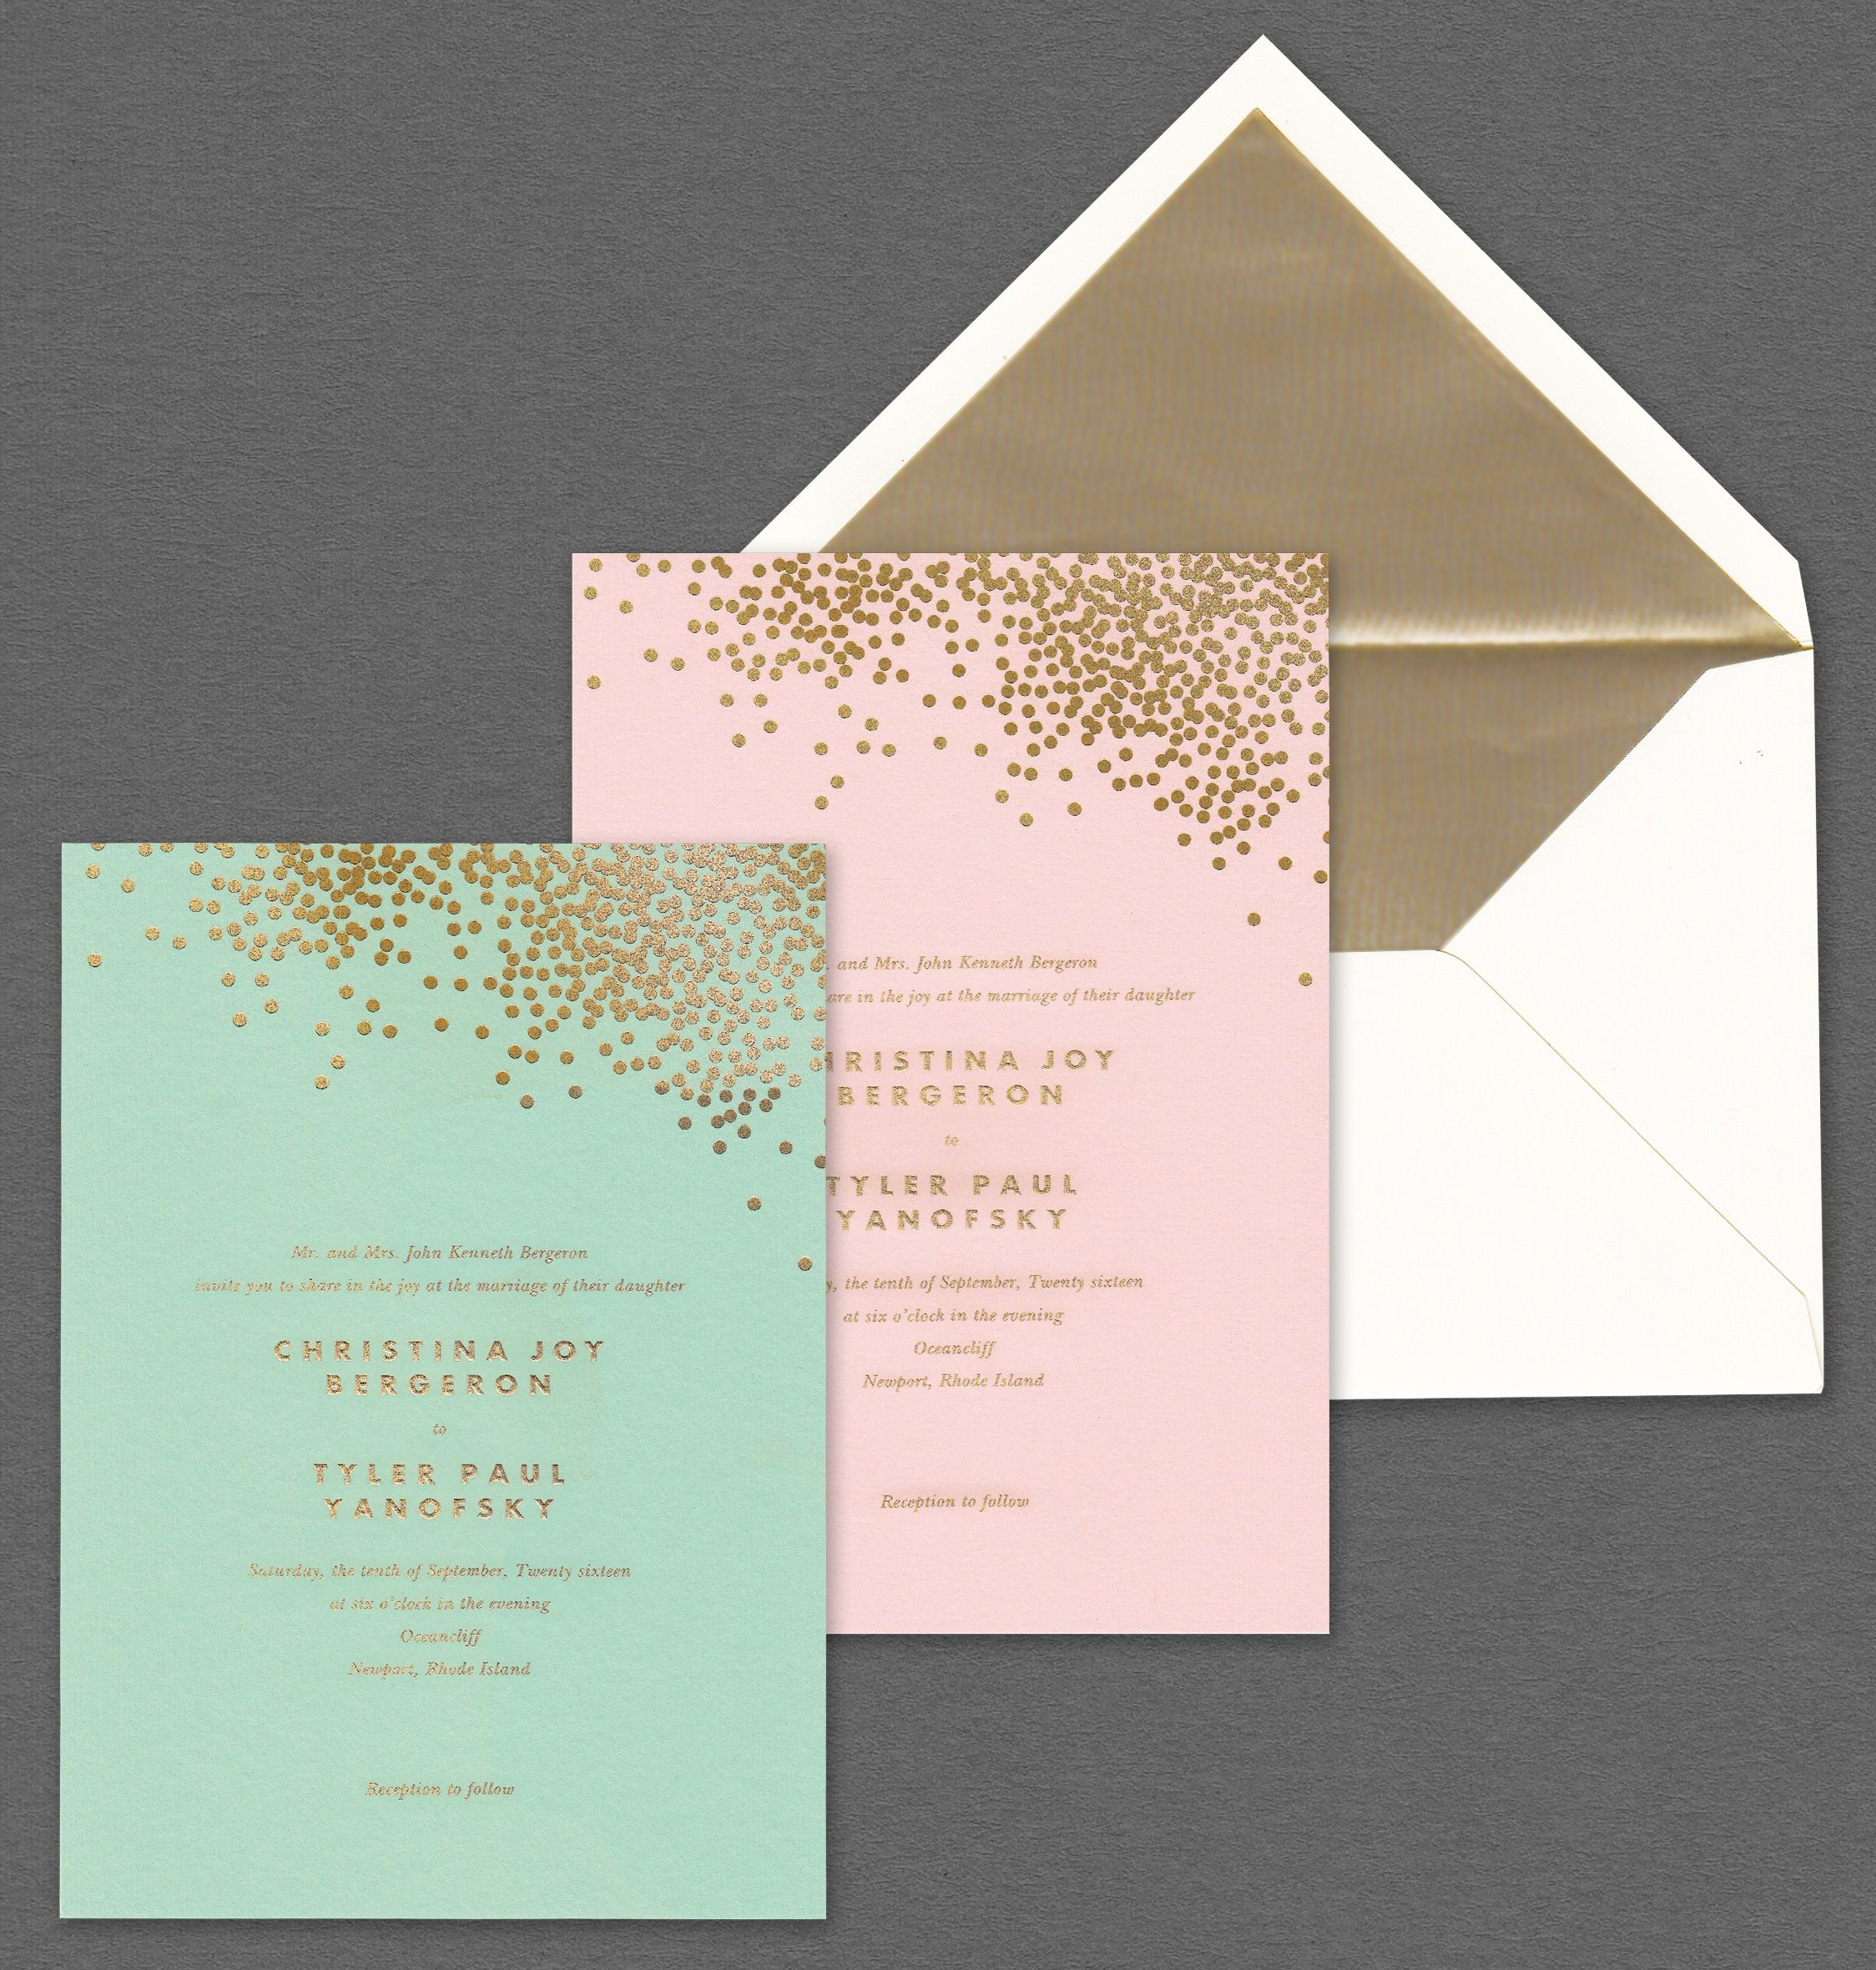 Vera Wang Mint And Blush Wedding Invitations With Gold Confetti.Available  At Honey Paper